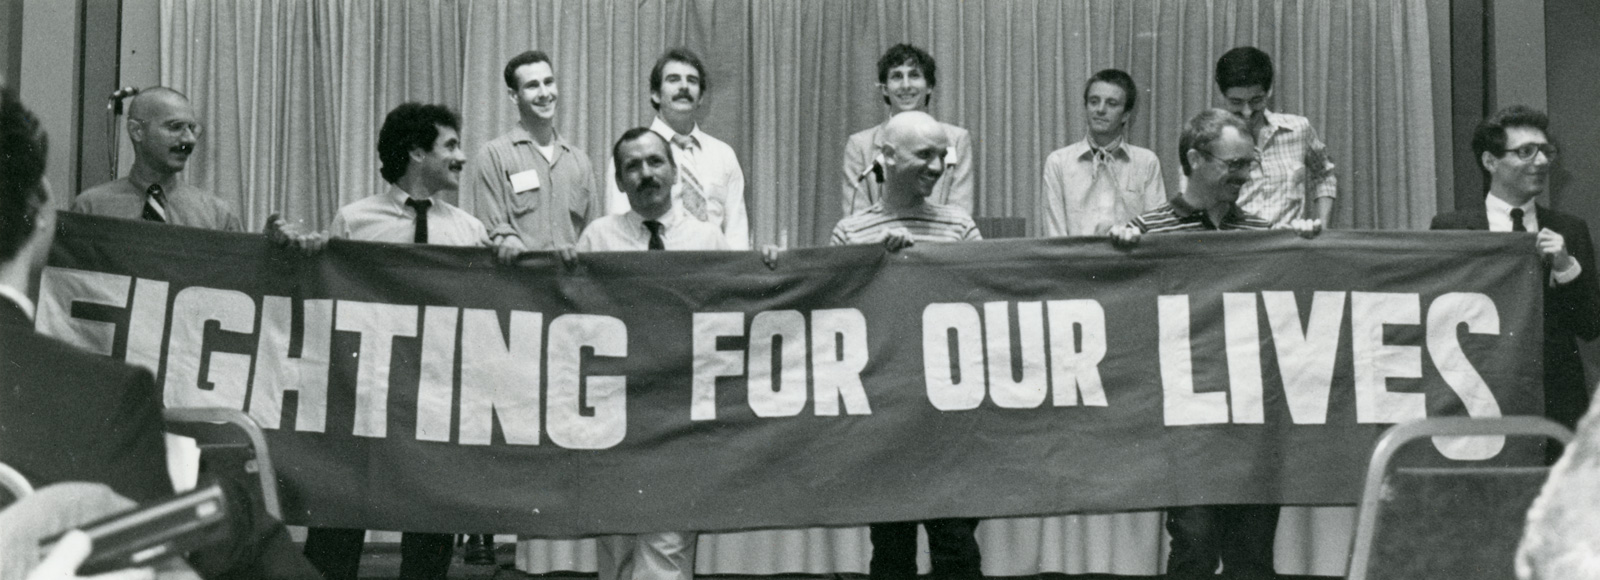 """<p>Richard Berkowitz(standing behind the Tin """"Fighting,"""" second from the left in the front row)and other AIDS activists unfurl a banner at a gay and lesbian health conference in Denver. Berkowitz is the only person pictured who is still alive.</p>"""